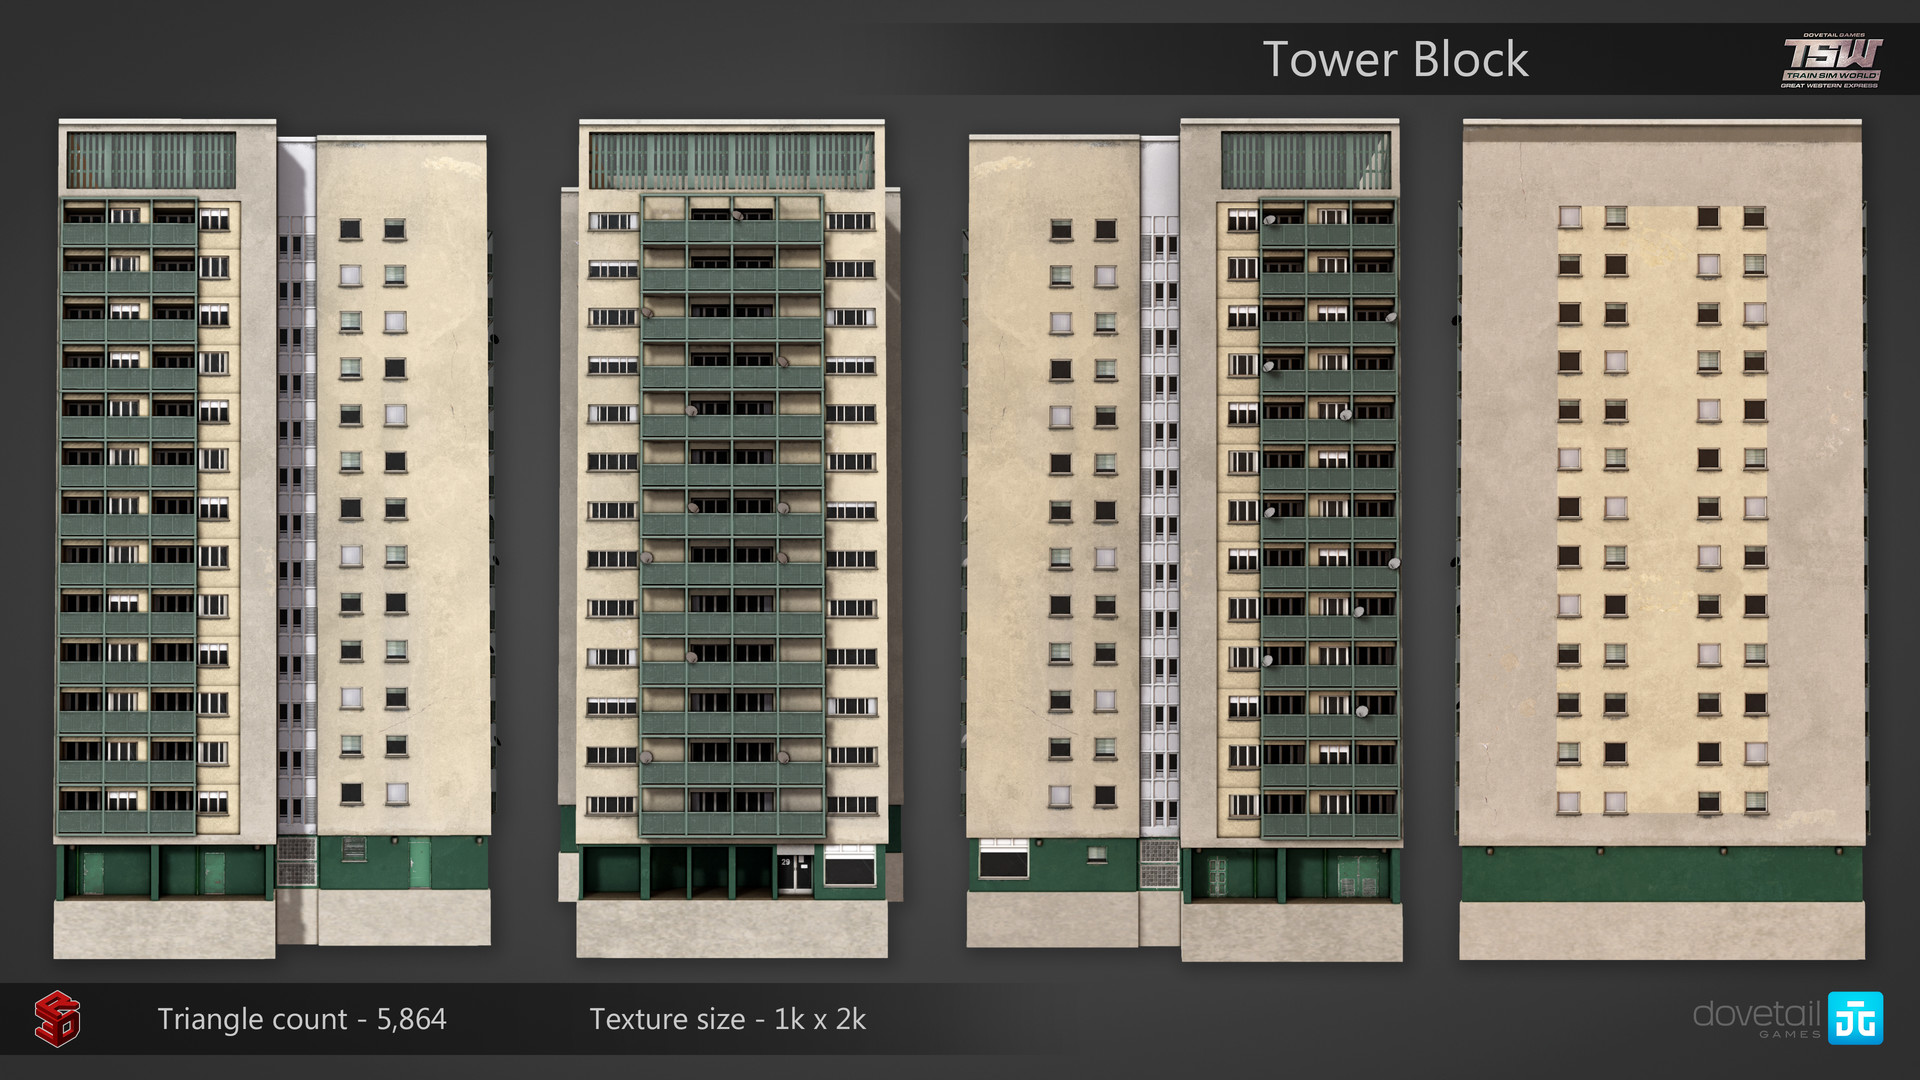 Ross mccafferty towerblock 01